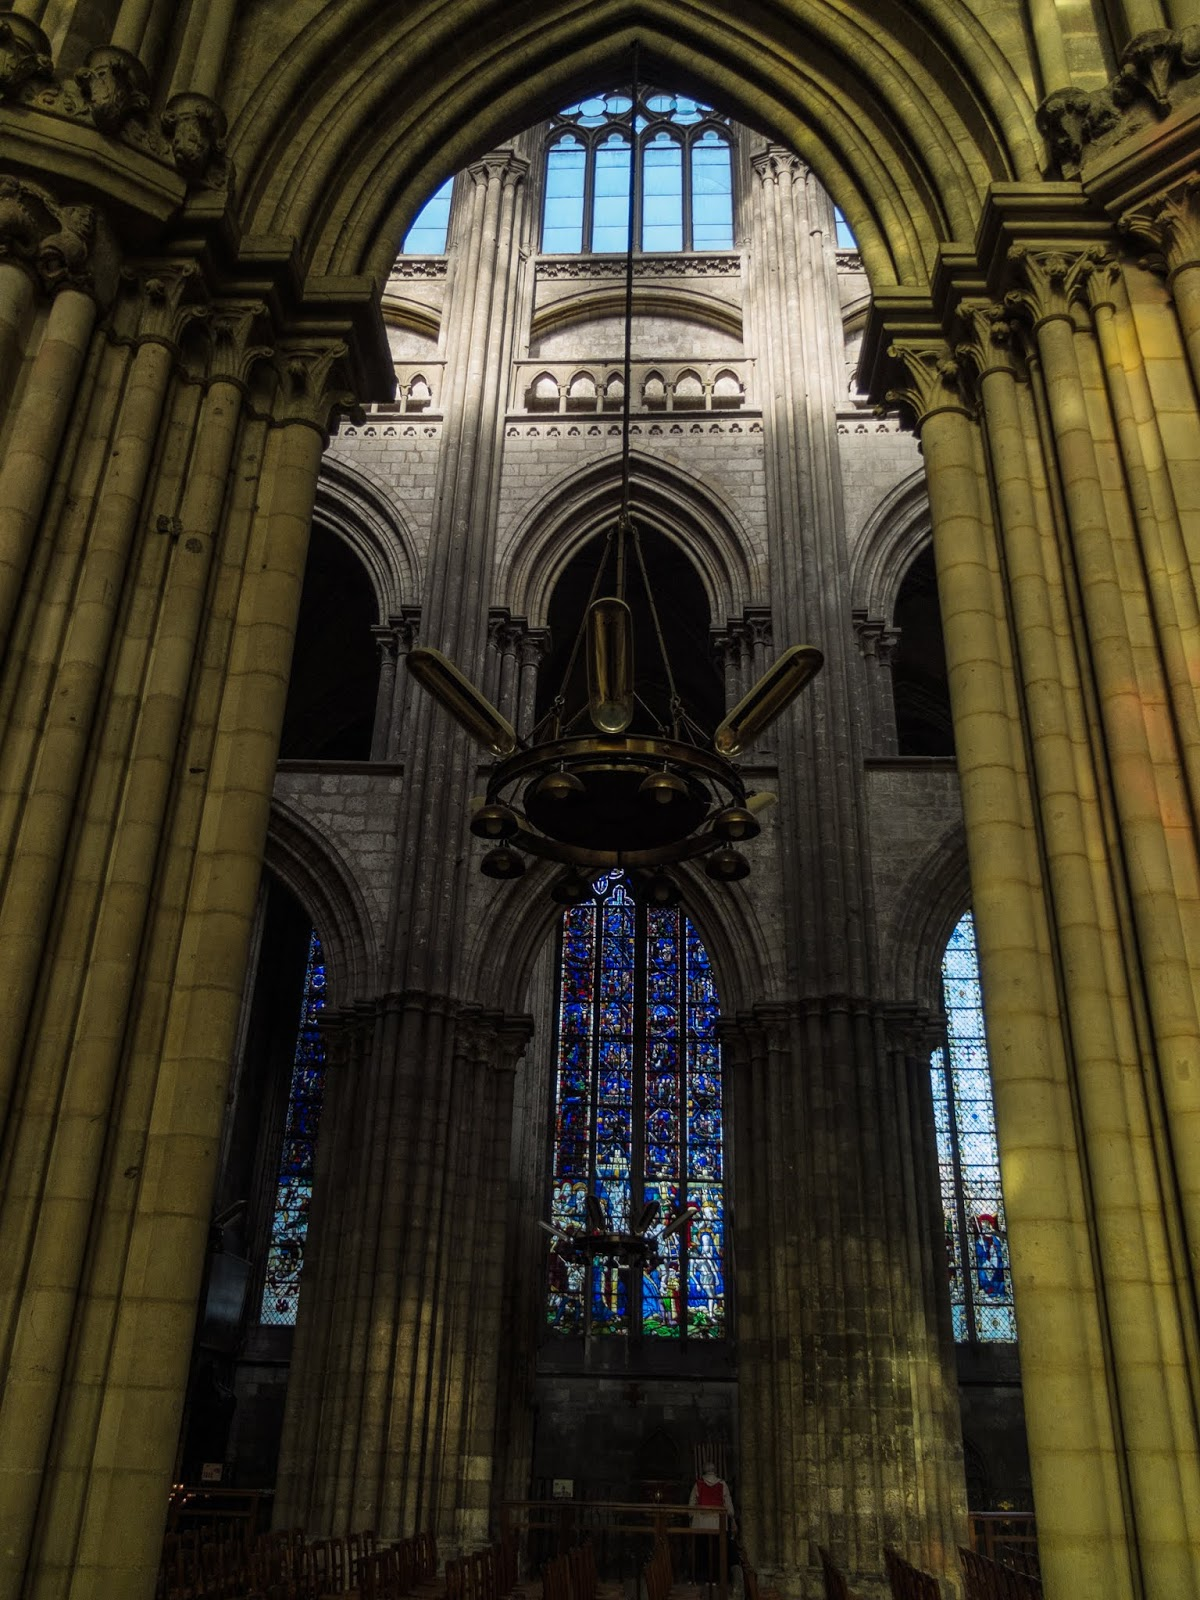 Stained glass and reflections inside the Rouen Cathedral.